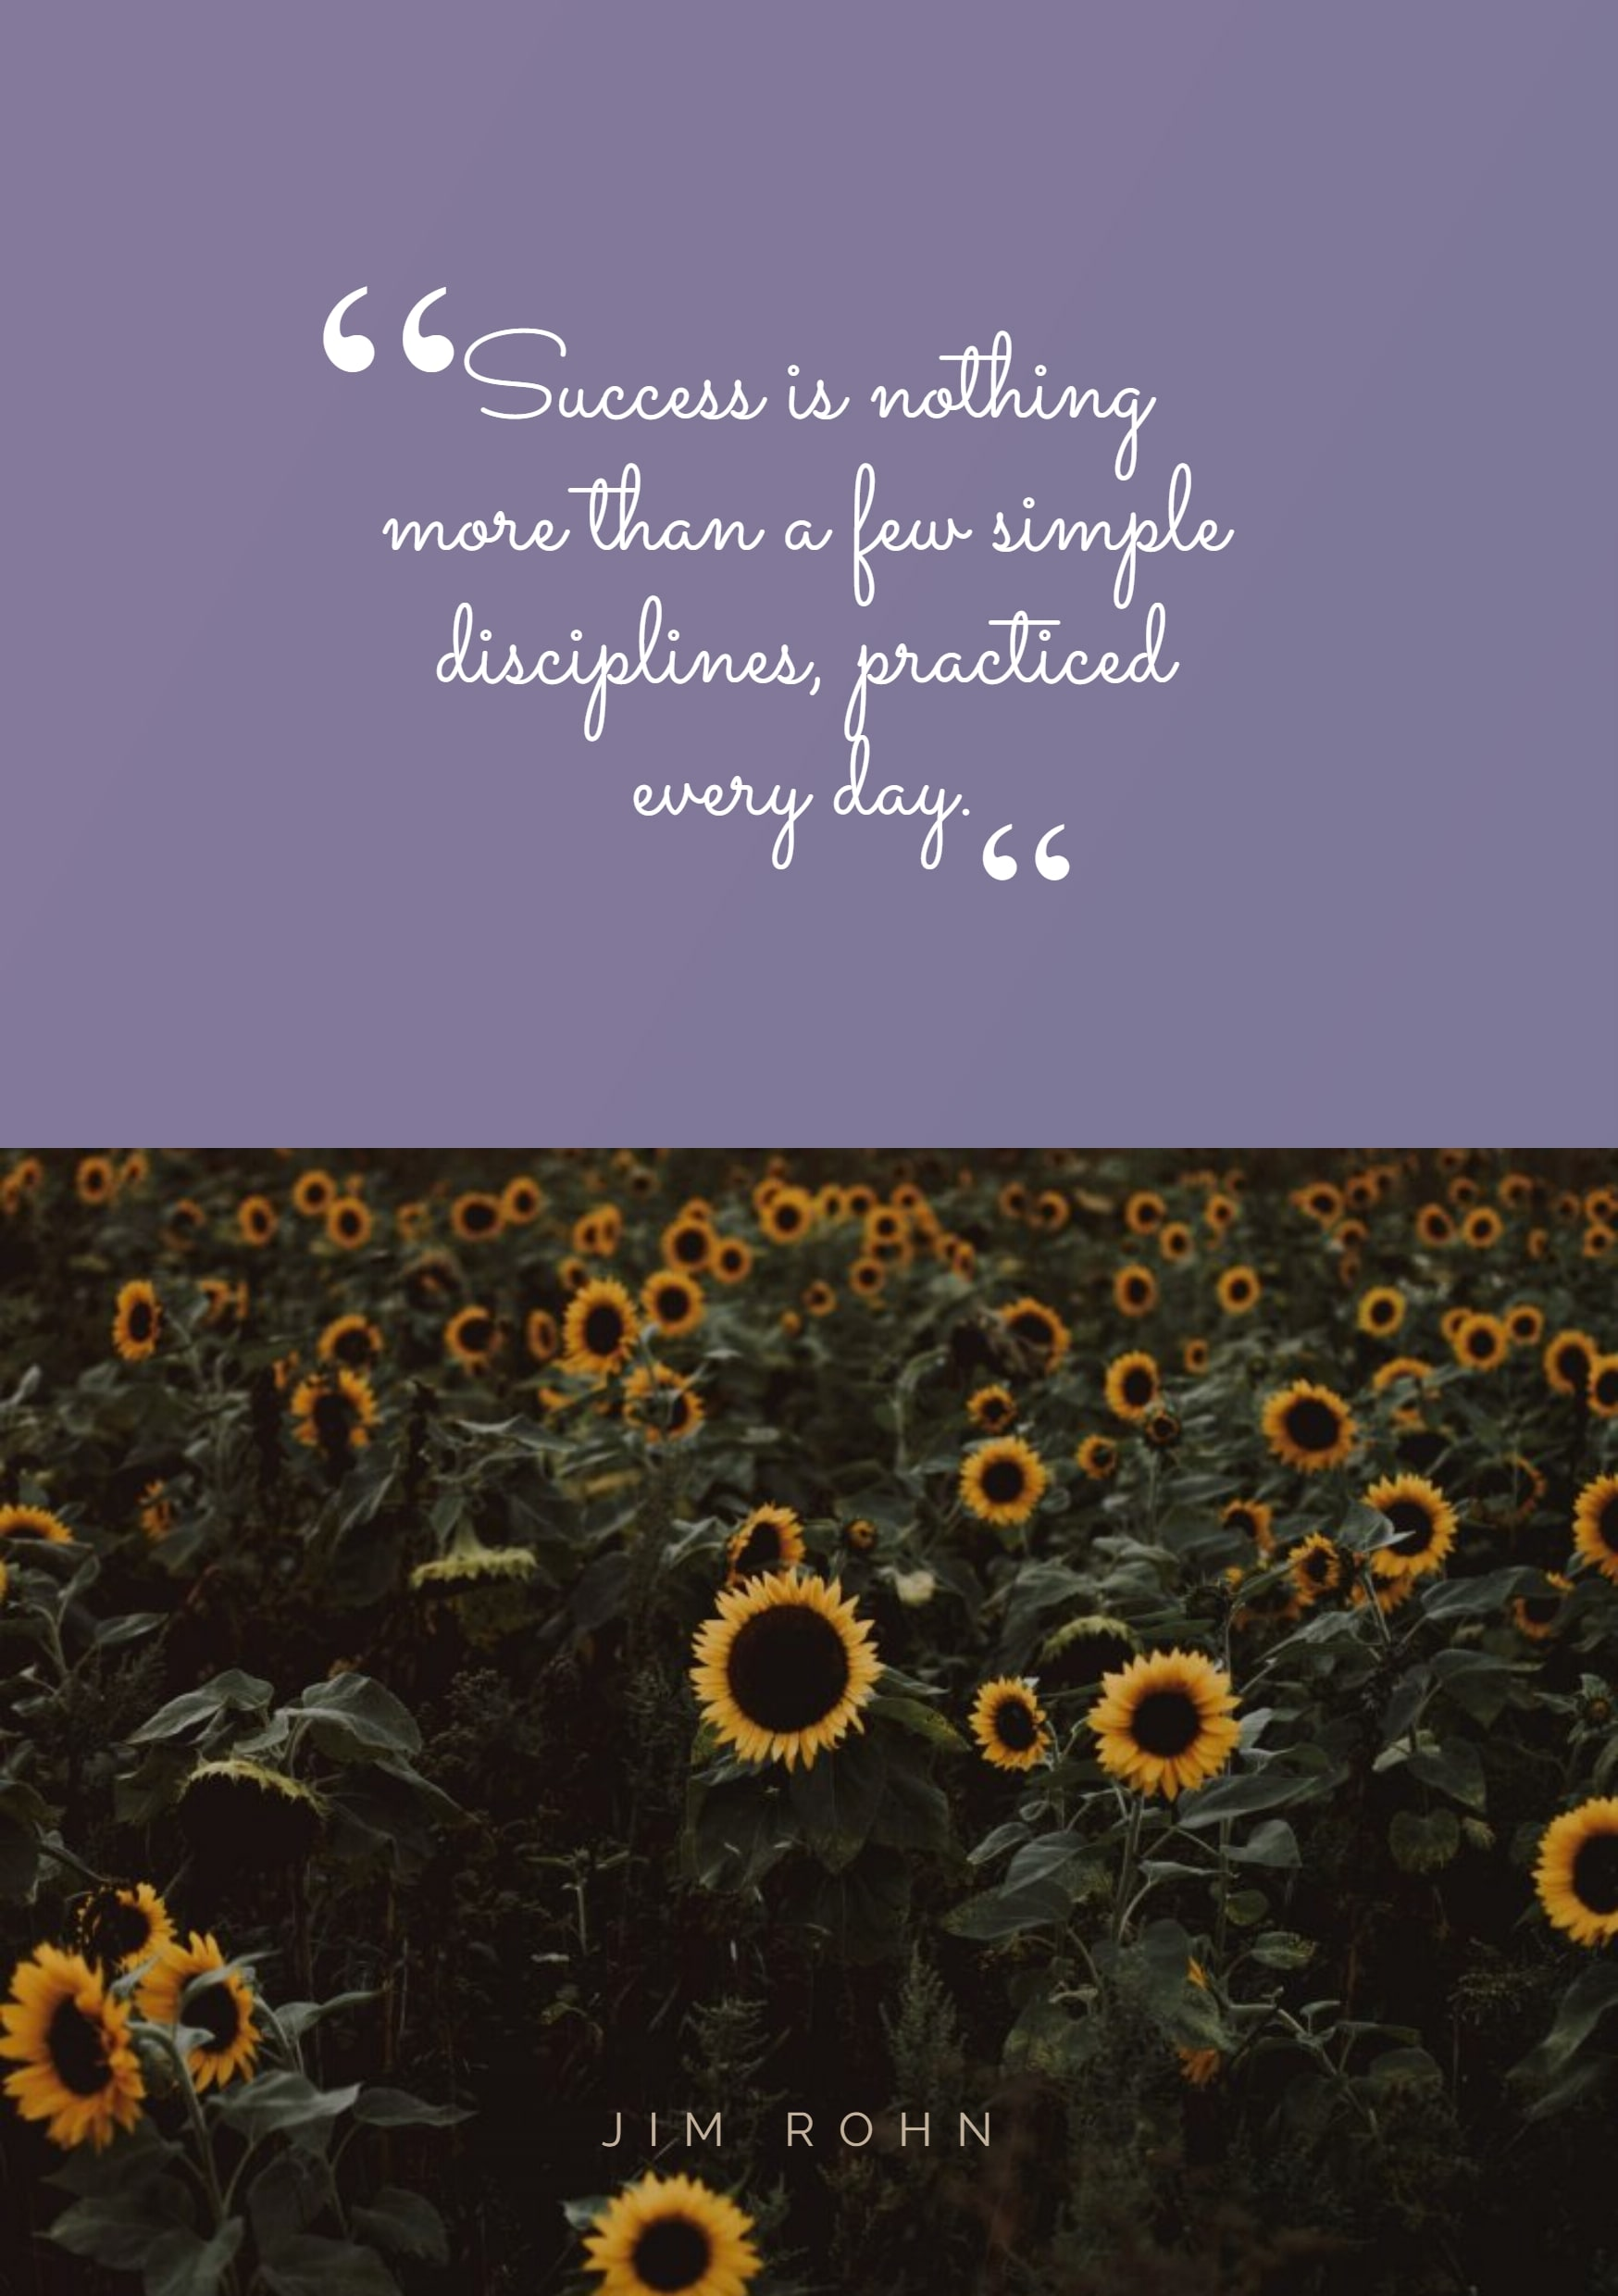 Quotes image of Success is nothing more than a few simple disciplines, practiced every day.